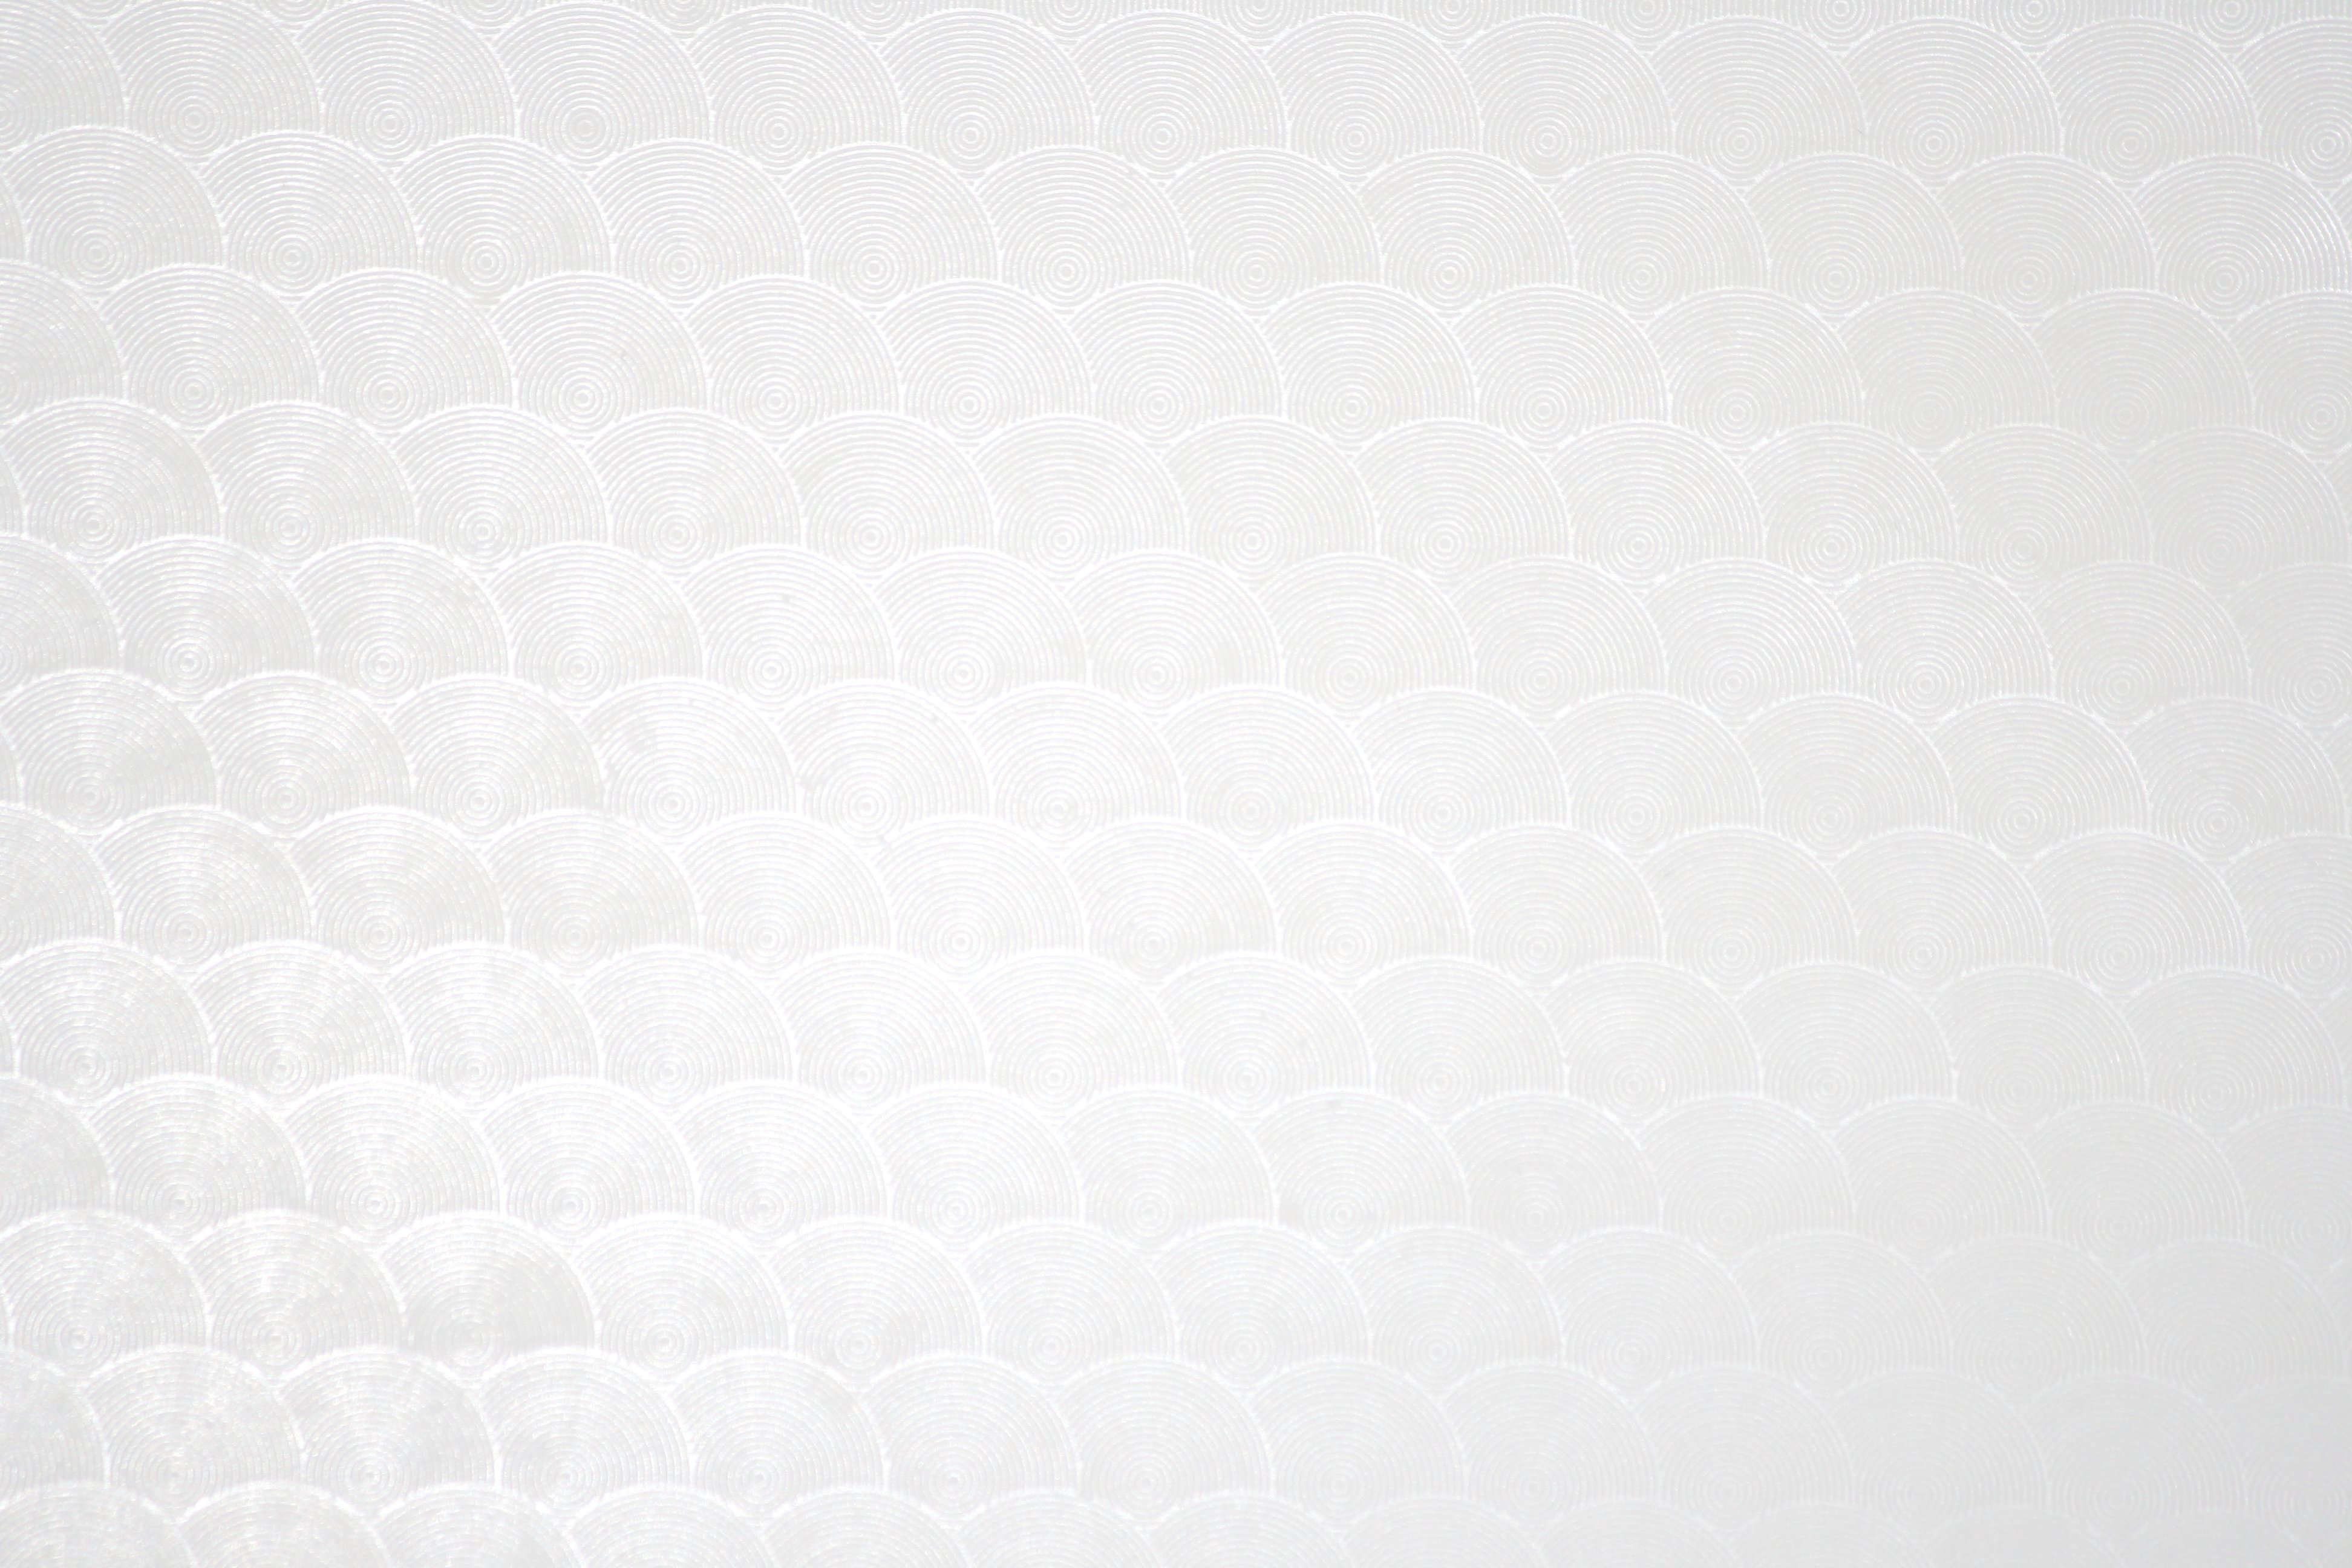 White circle patterned plastic texture picture free for Free white texture